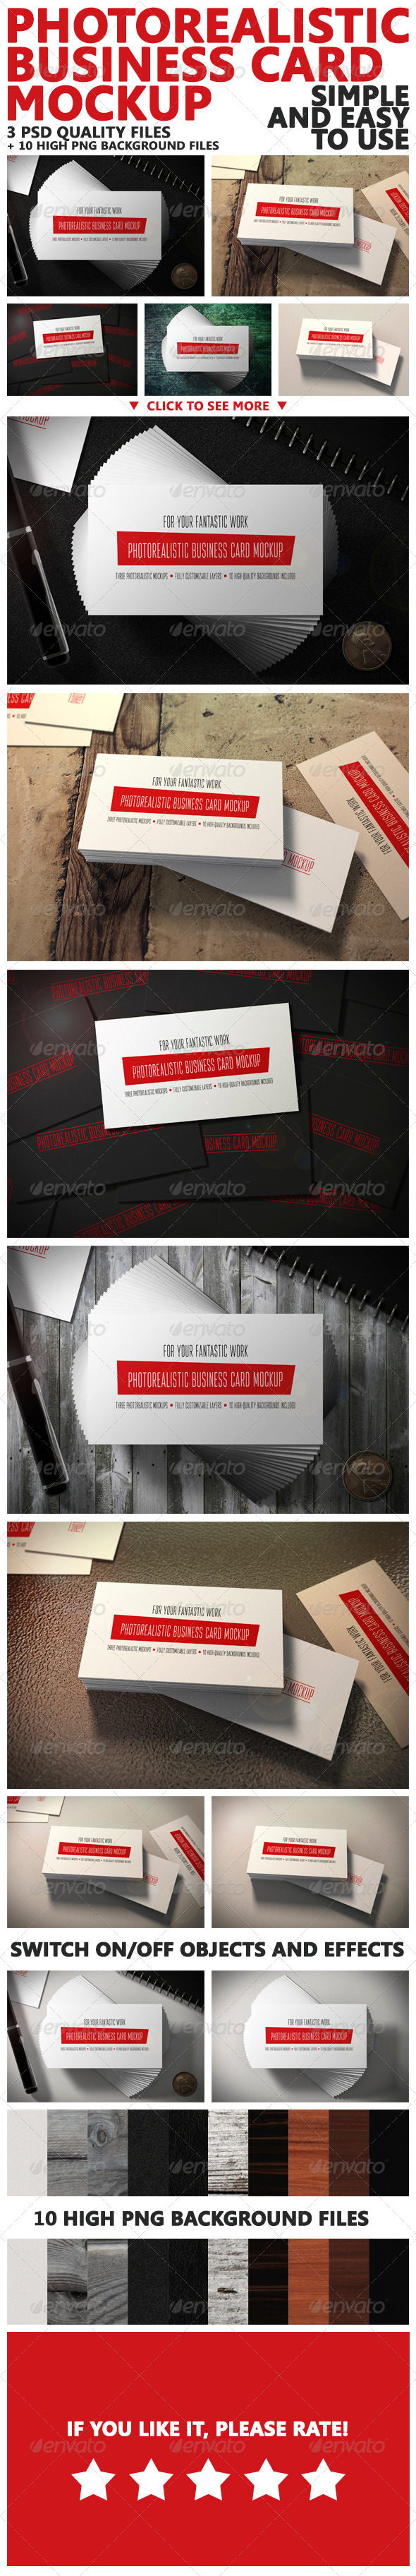 GraphicRiver Photorealistic Business Card Mockup 6653278